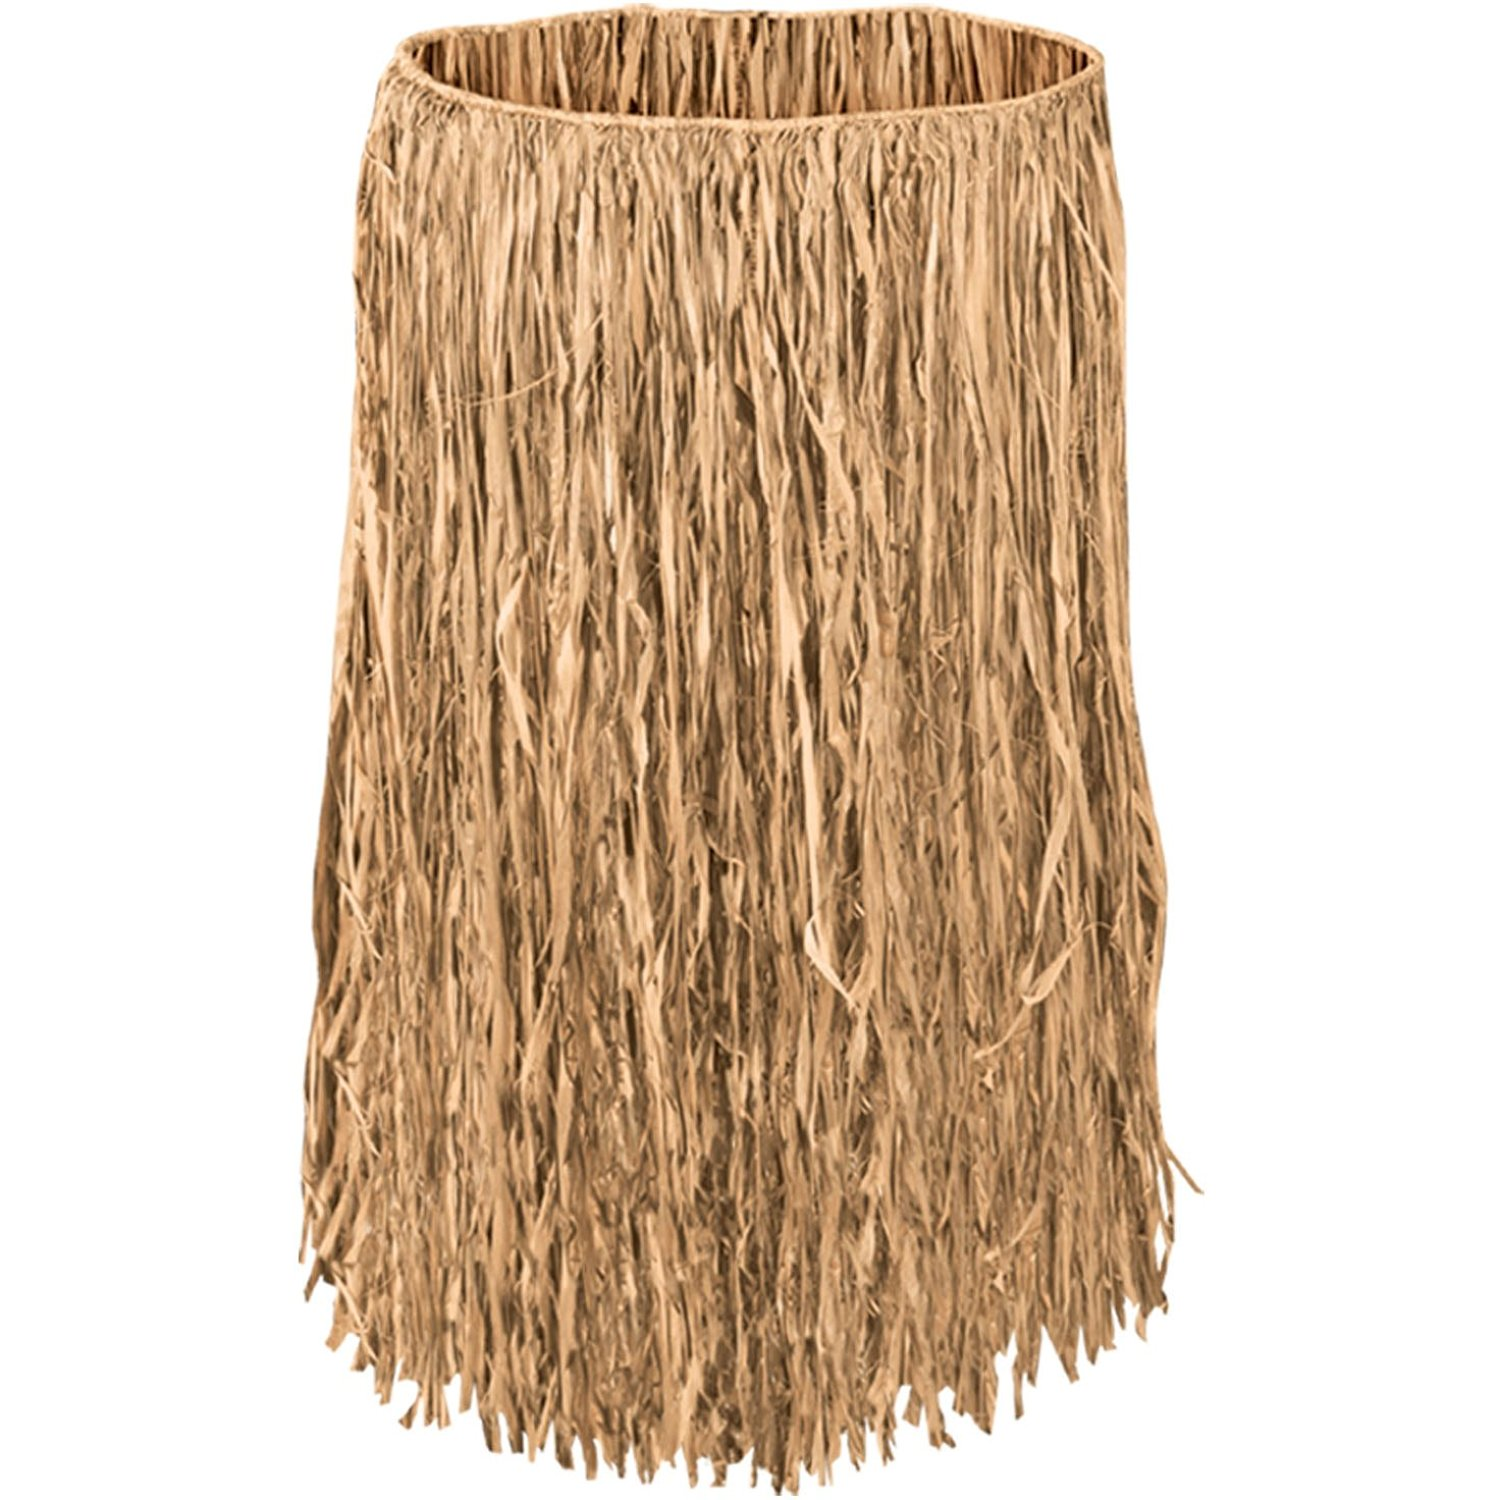 Child Raffia Hula Skirt (natural) Party Accessory (1 count) (1/Pkg)